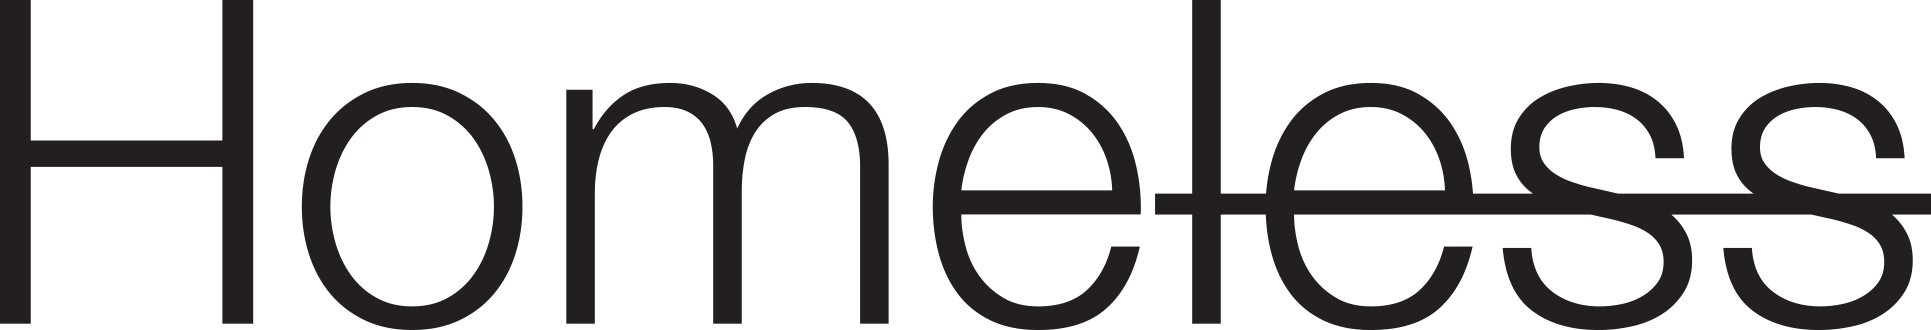 STEFEN-HOMELESS-LOGO-PATHED (1).png